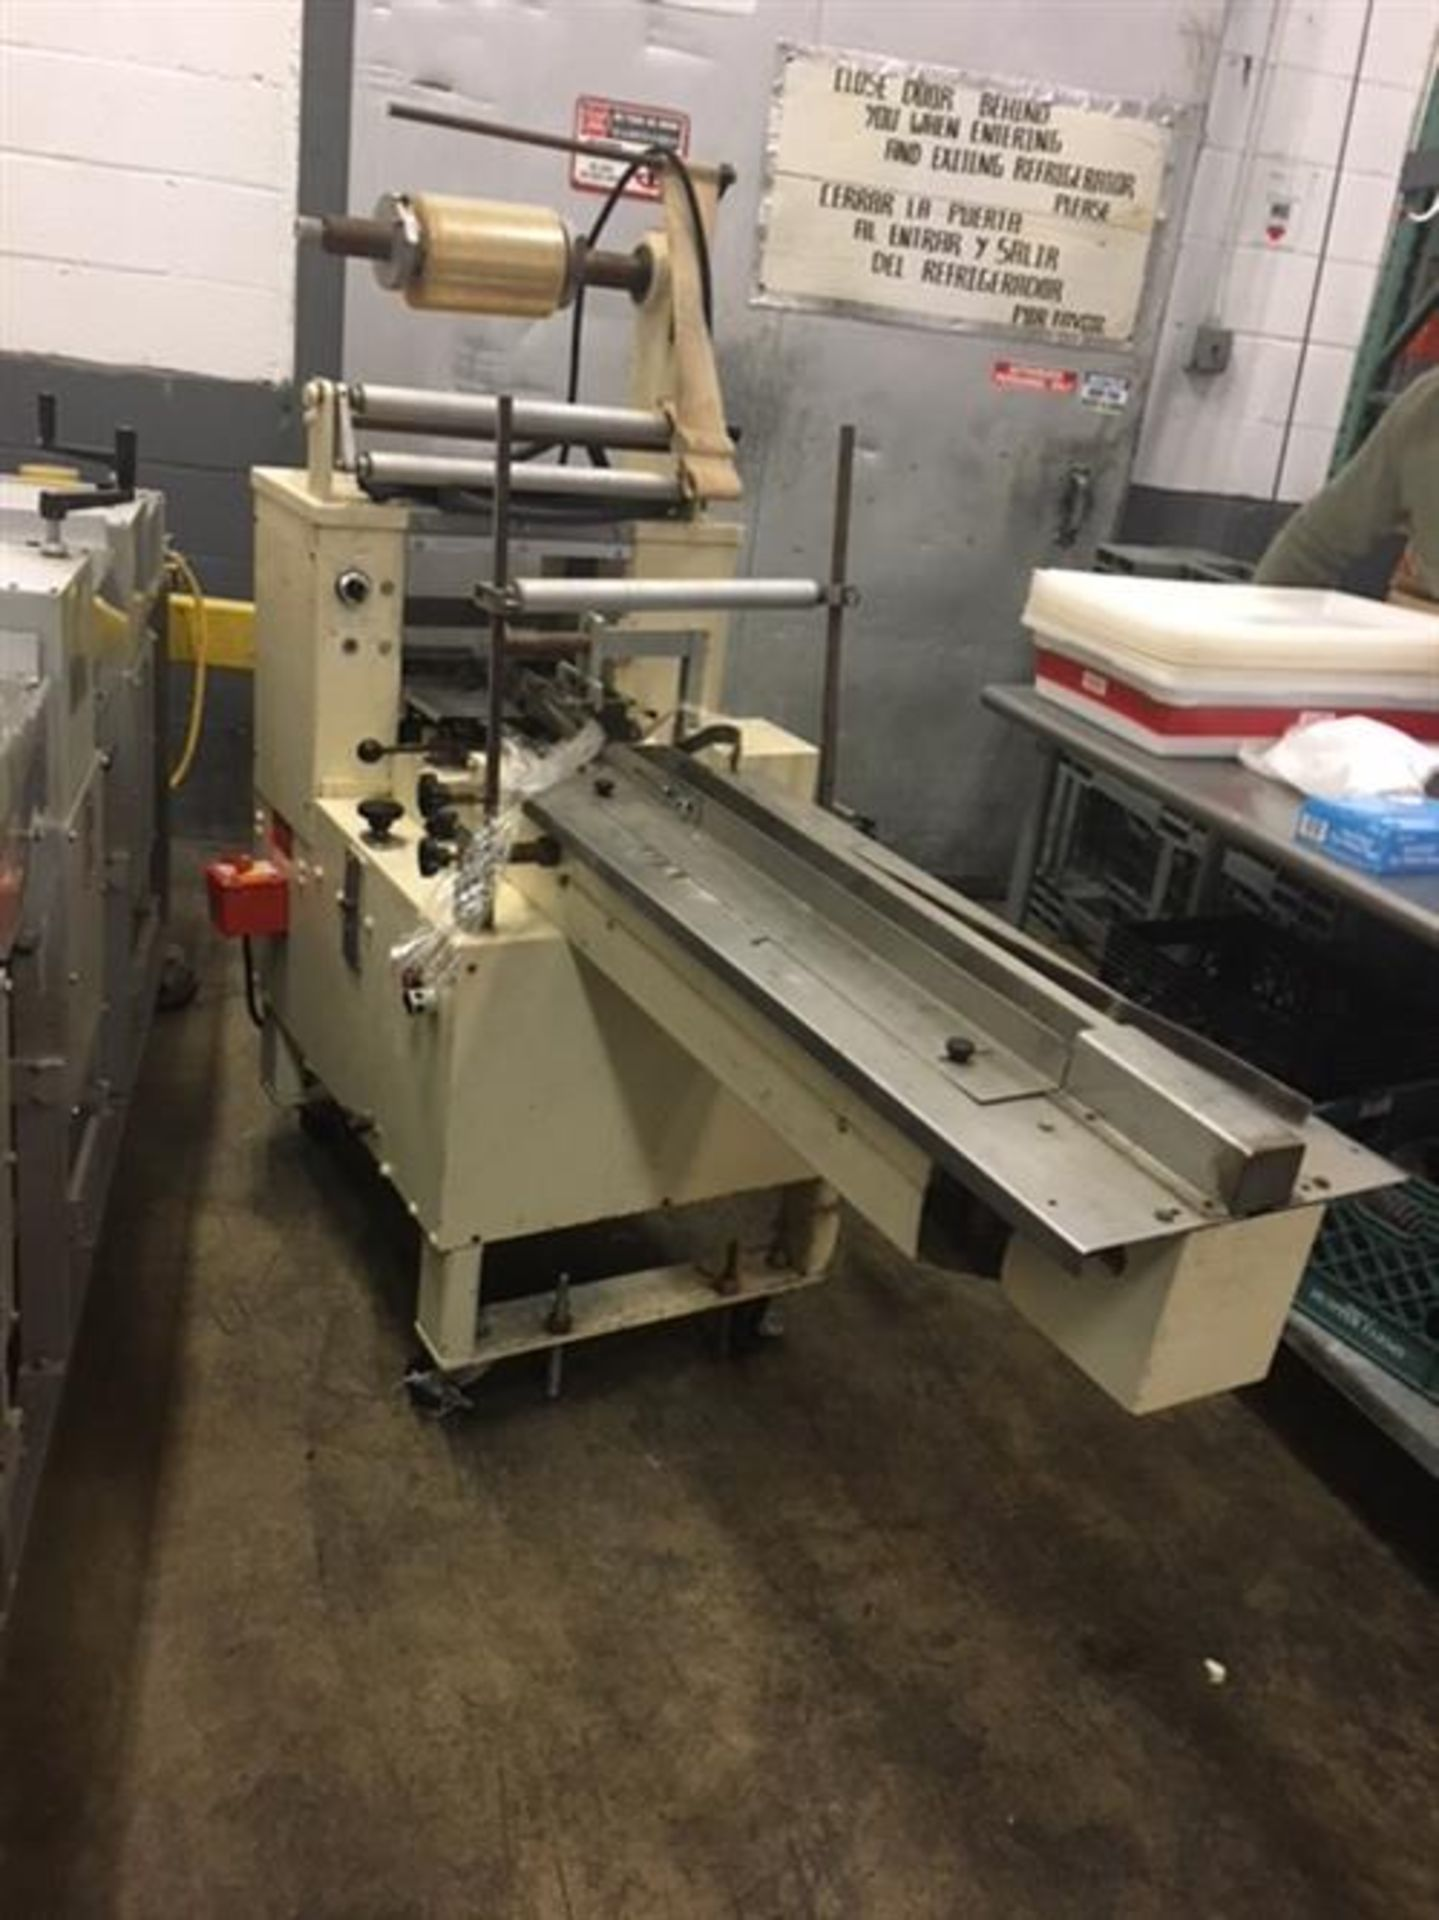 Doboy Scotty Horizontal Flow Wrapper - No electric eye (clear or continuous print cellophane film) - - Image 2 of 8